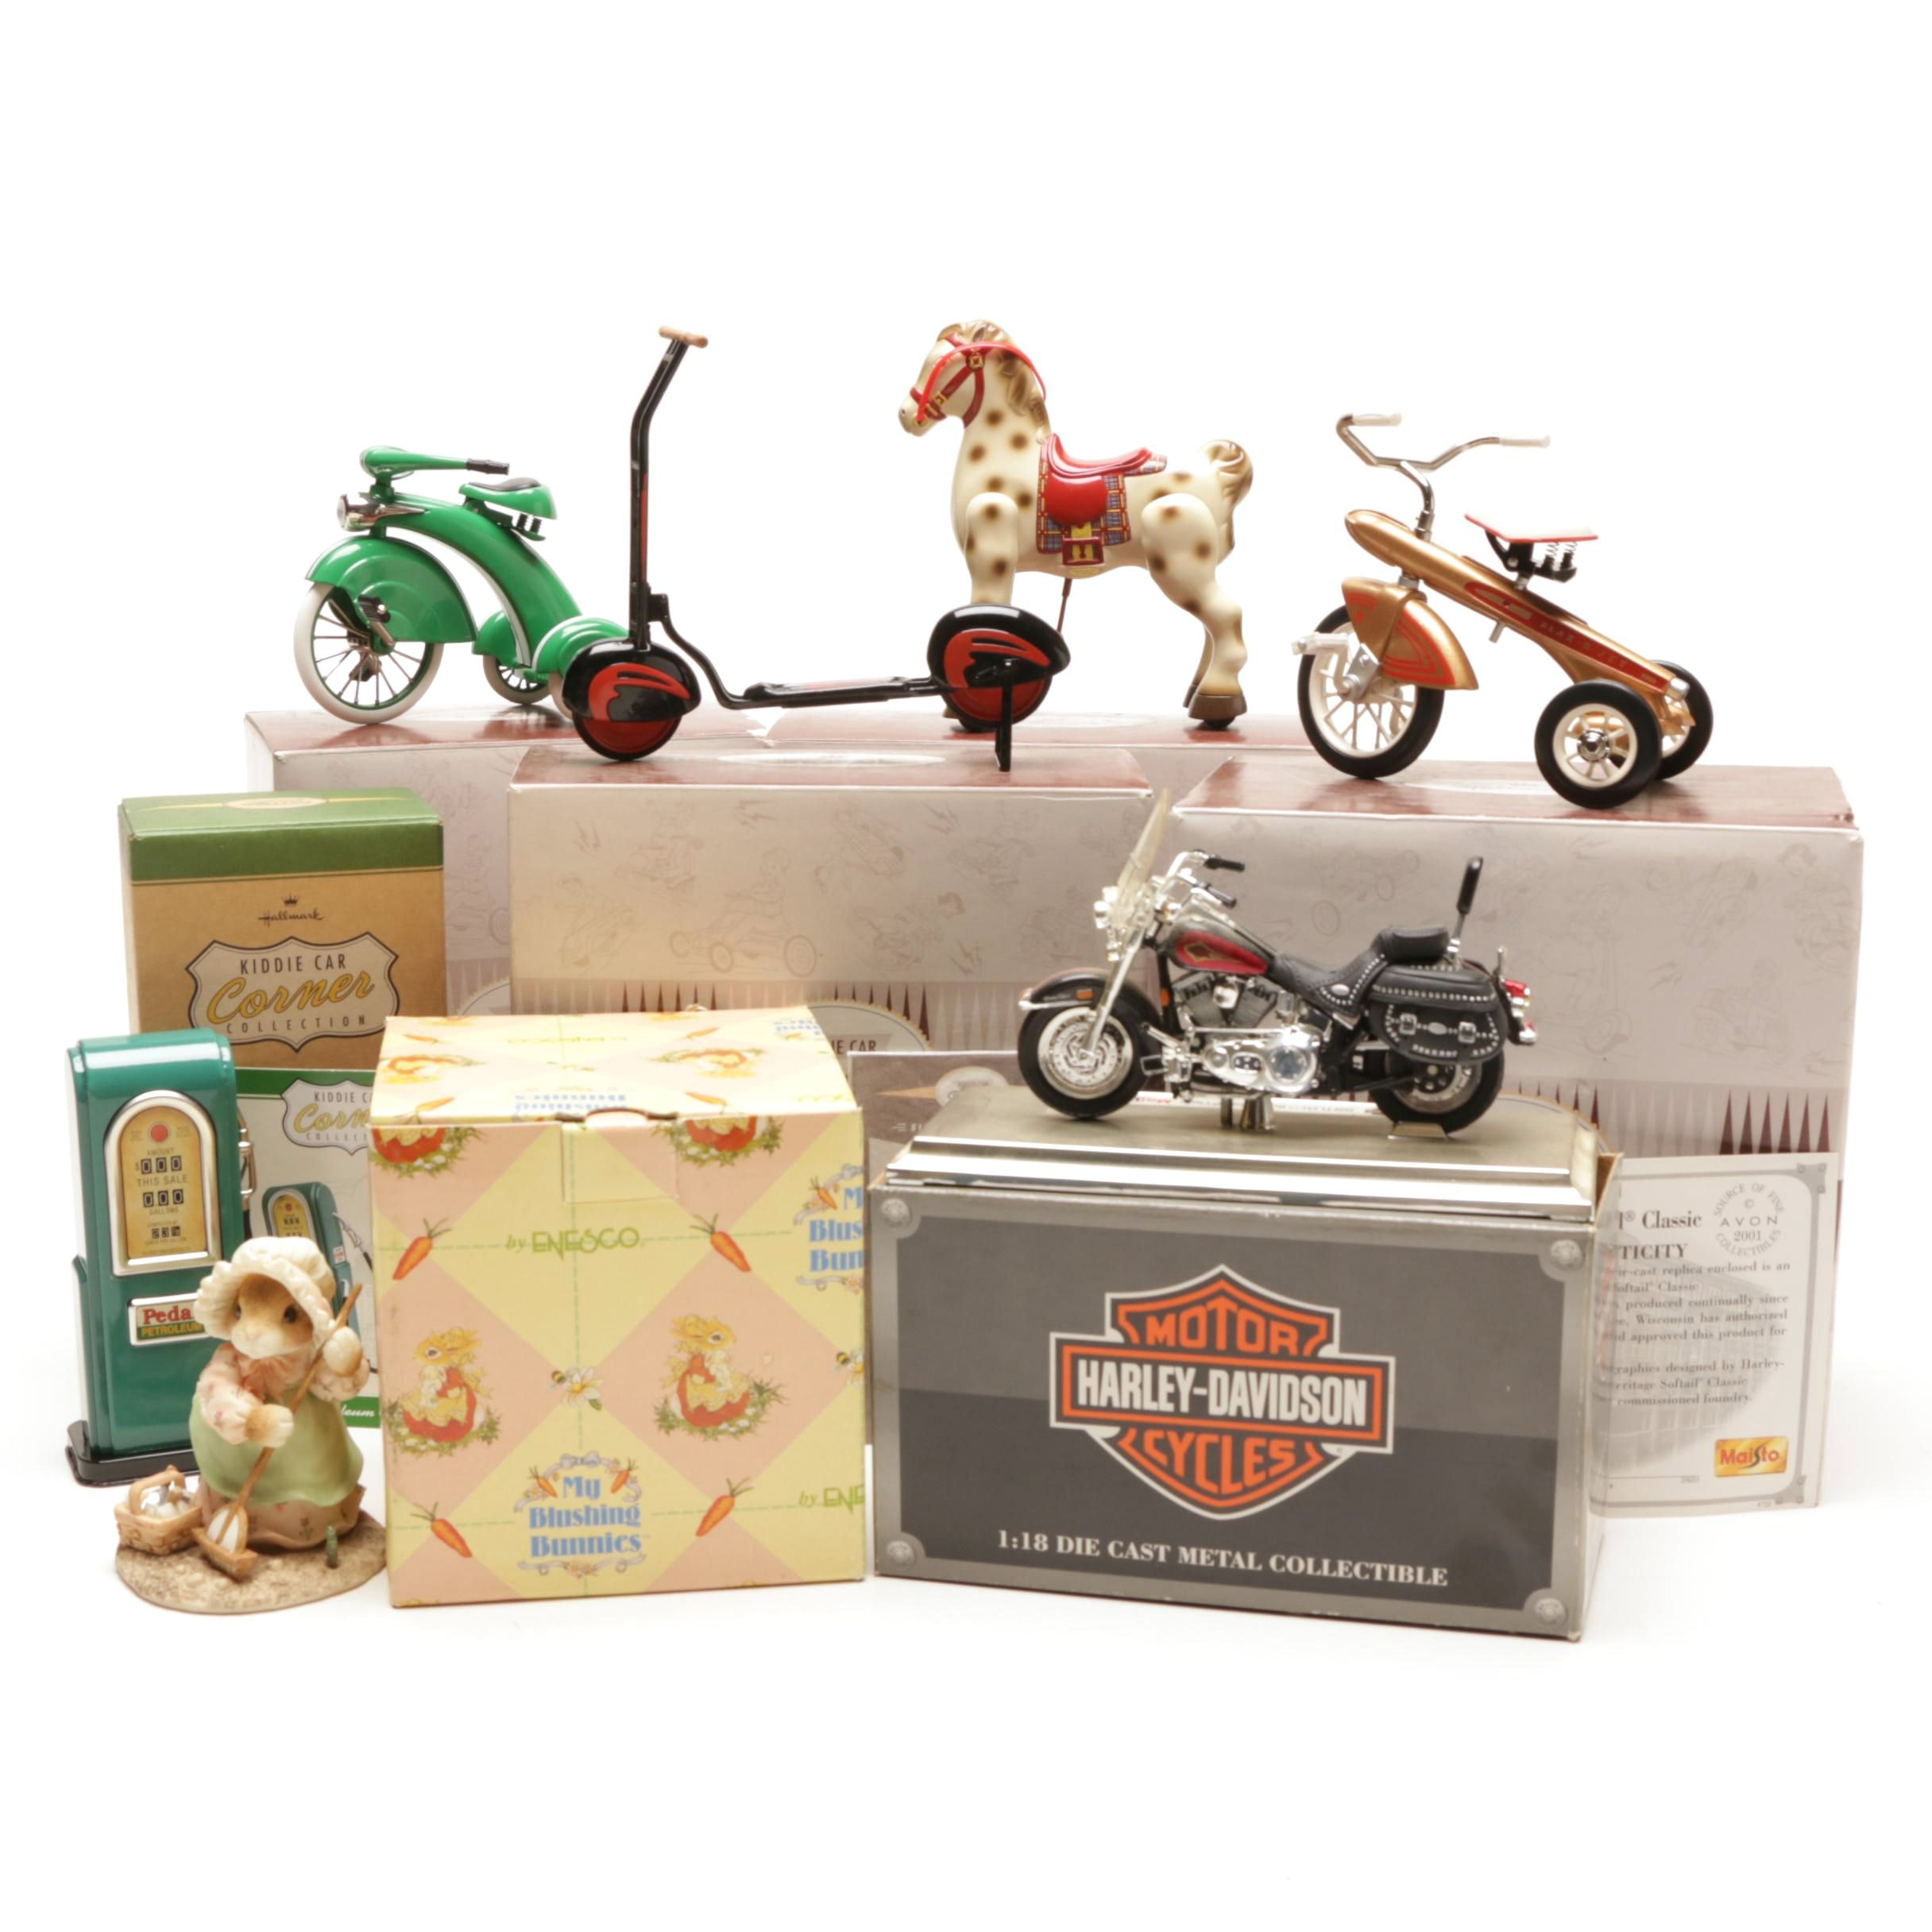 Hallmark Collectibles and More